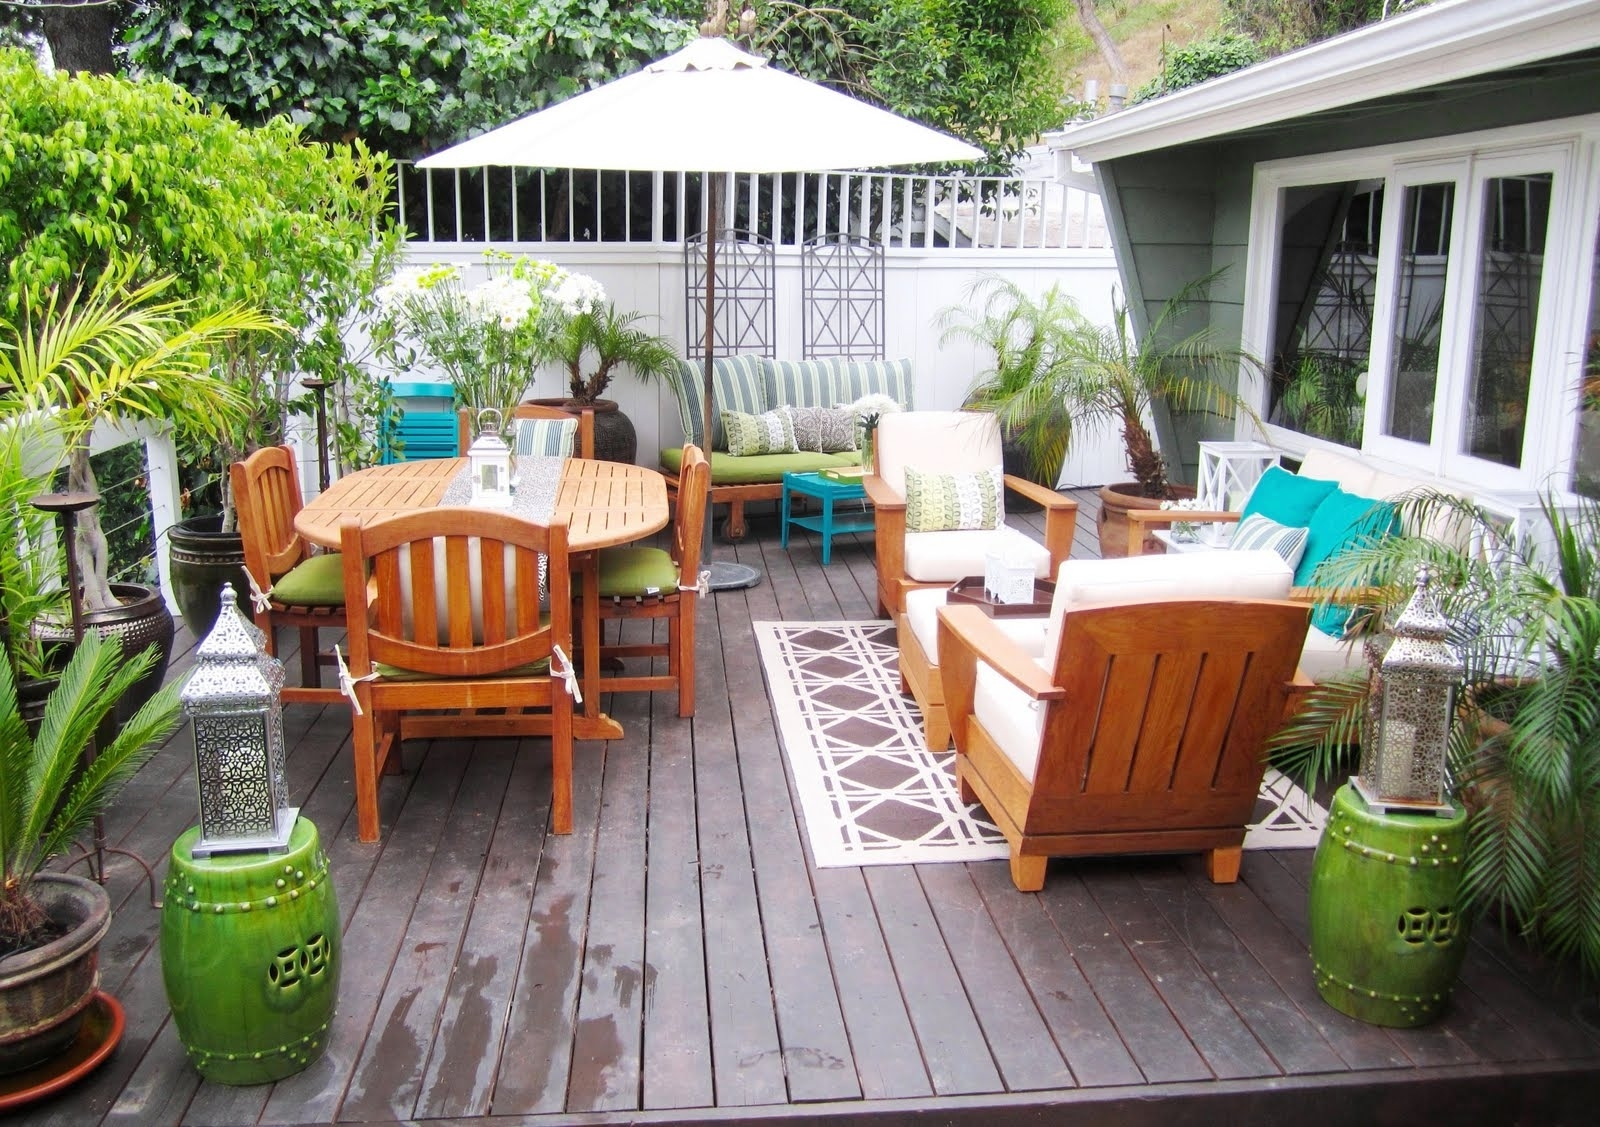 Patio Umbrellas For Small Spaces Pertaining To Well Known Decoration Indoor Outdoor Living Room Furniture Living Room (View 14 of 20)